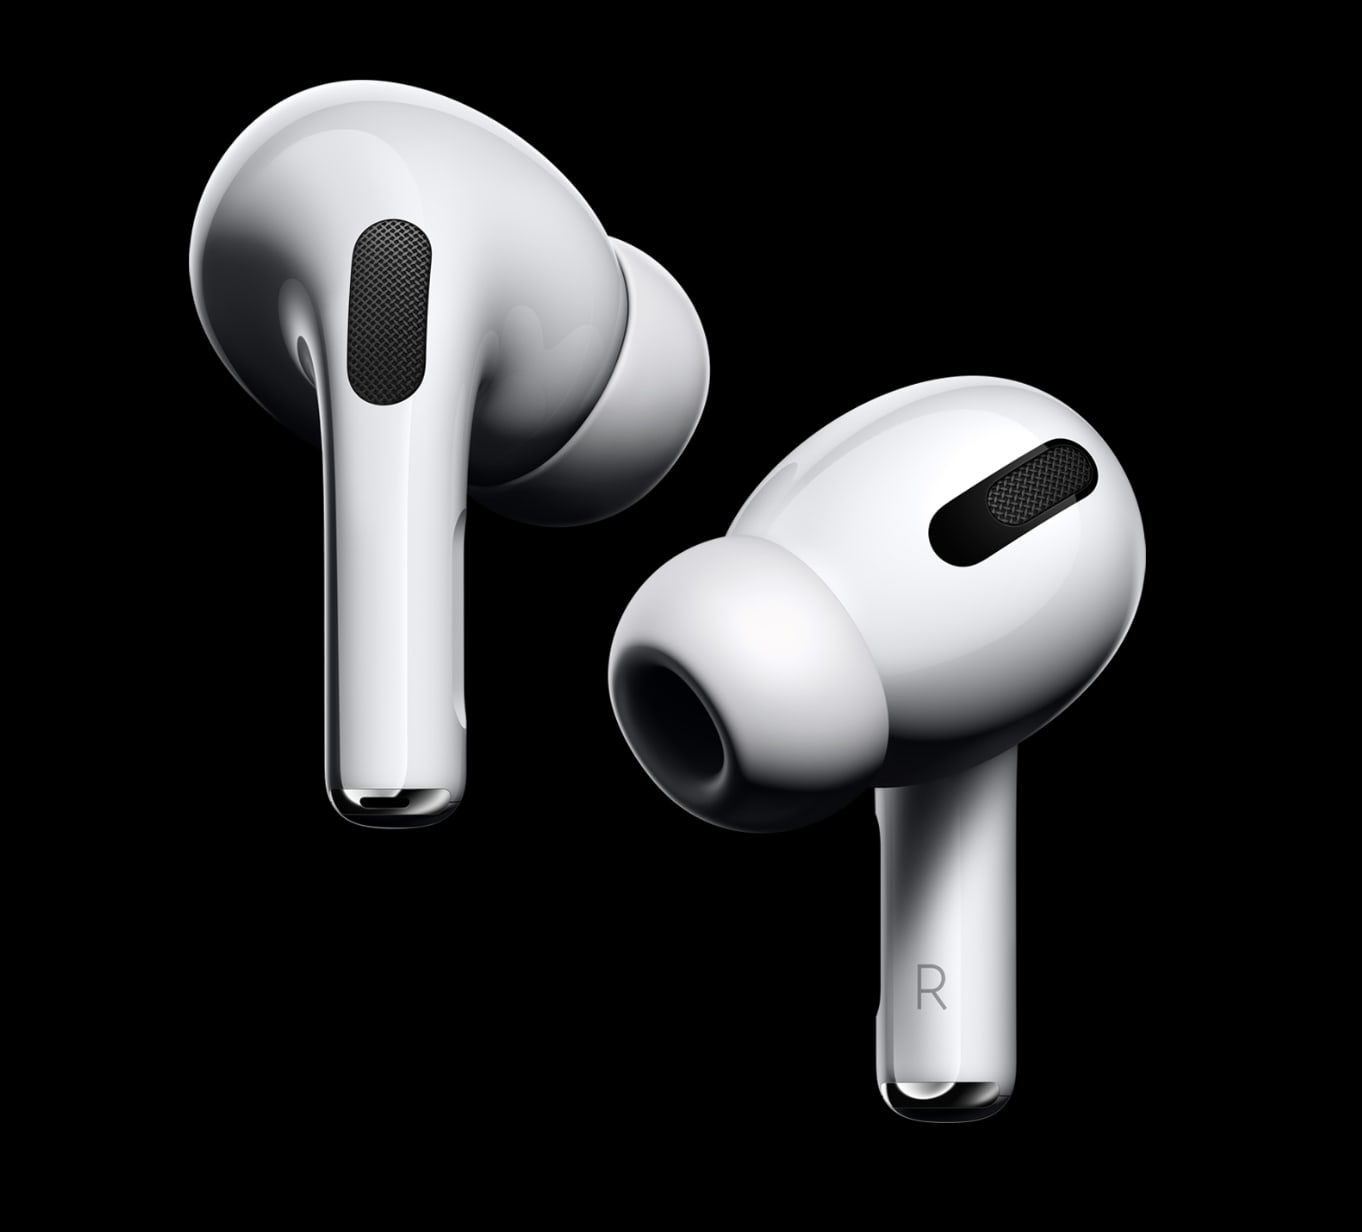 Tech News: You can't get AirPods Pro from Apple before the holidays, so Apple is doubling orders — here's where they're still in stock – CNBC